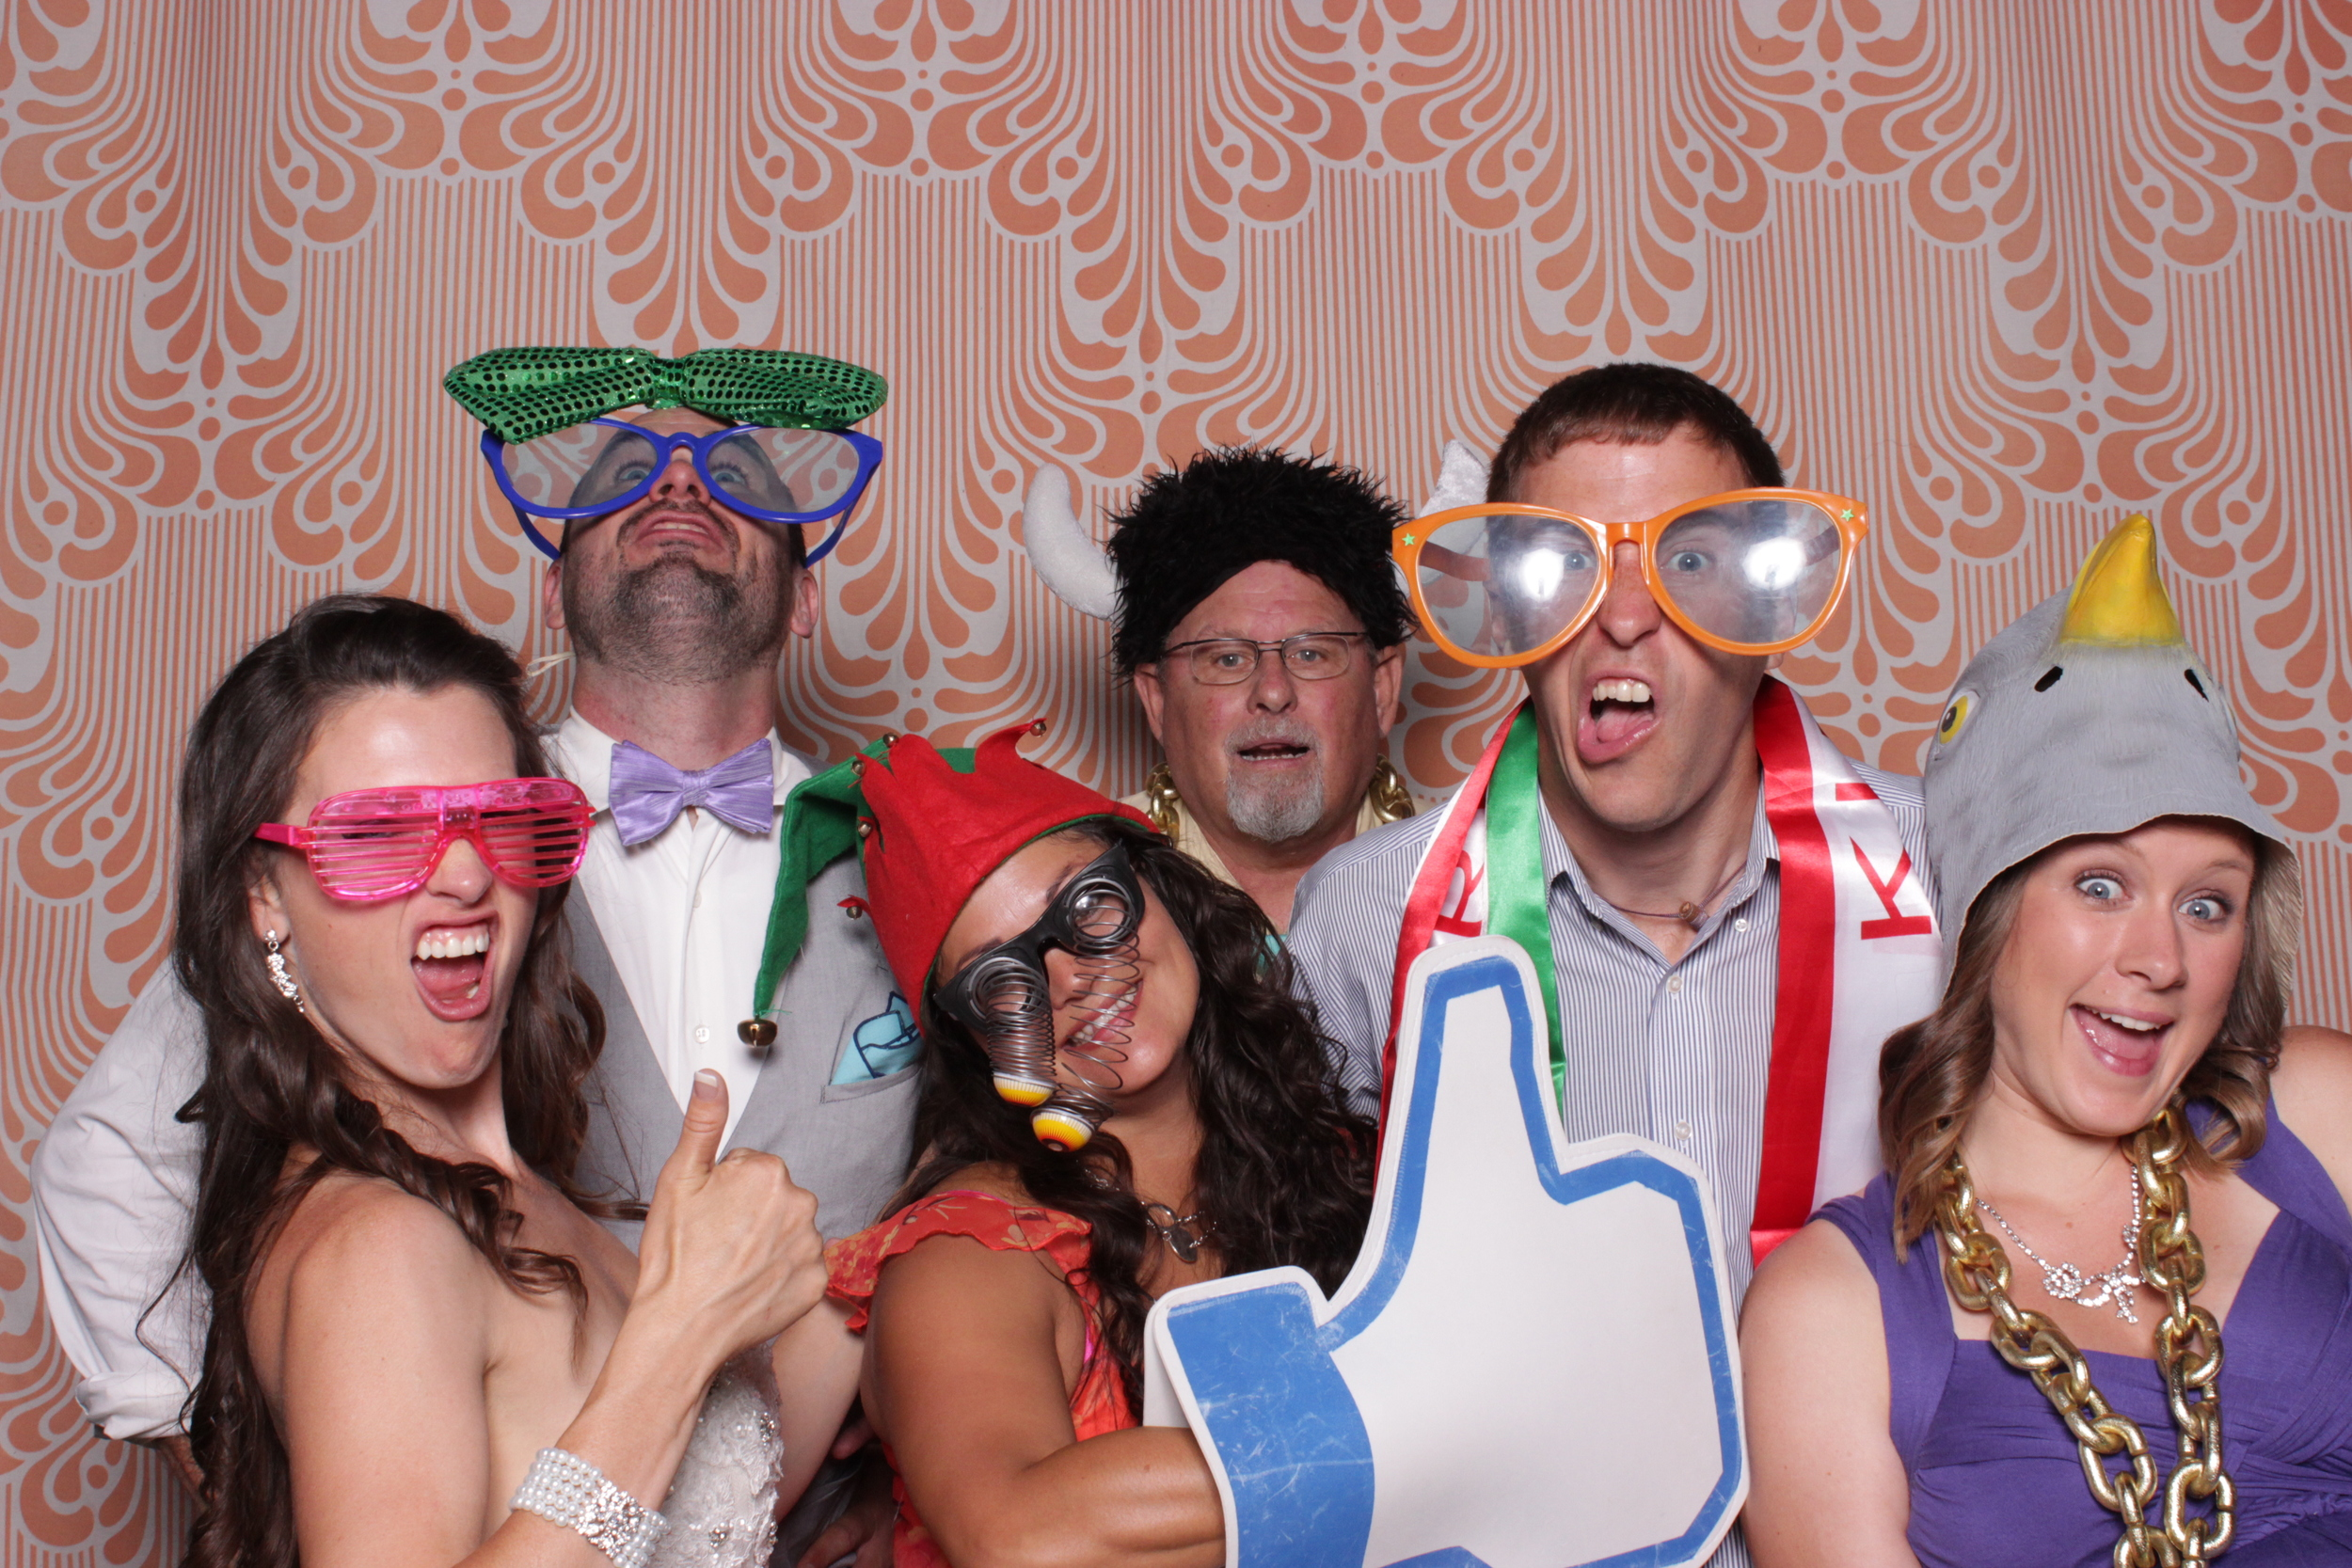 chico-photo-booth-rental-reception-guest-activities-group-print-gift